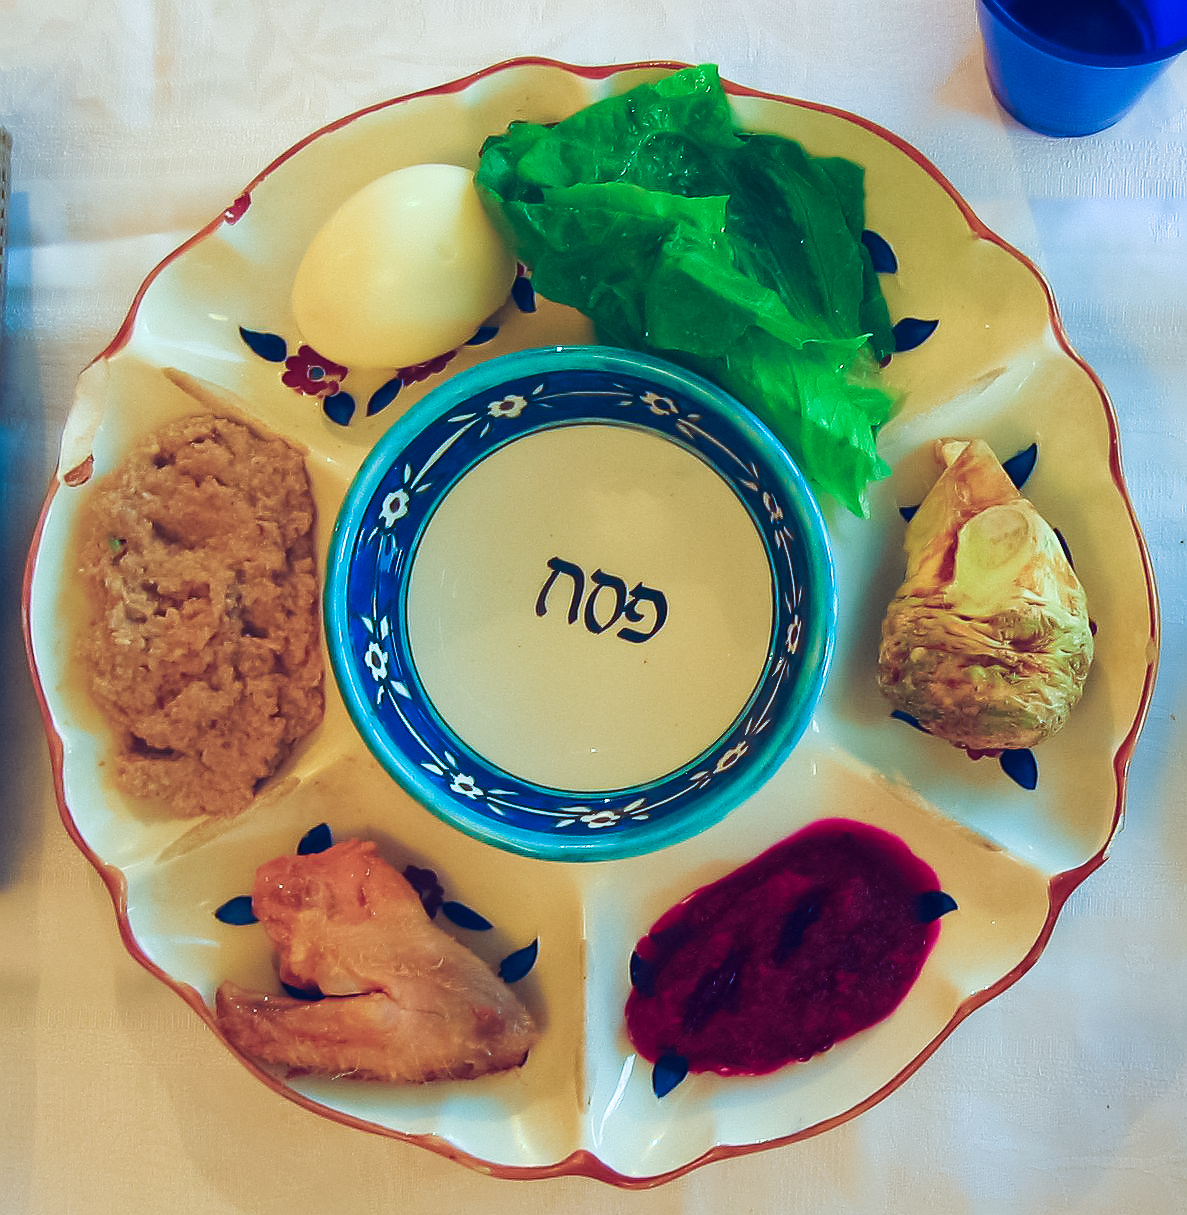 Passover Seder plate - Wikipedia